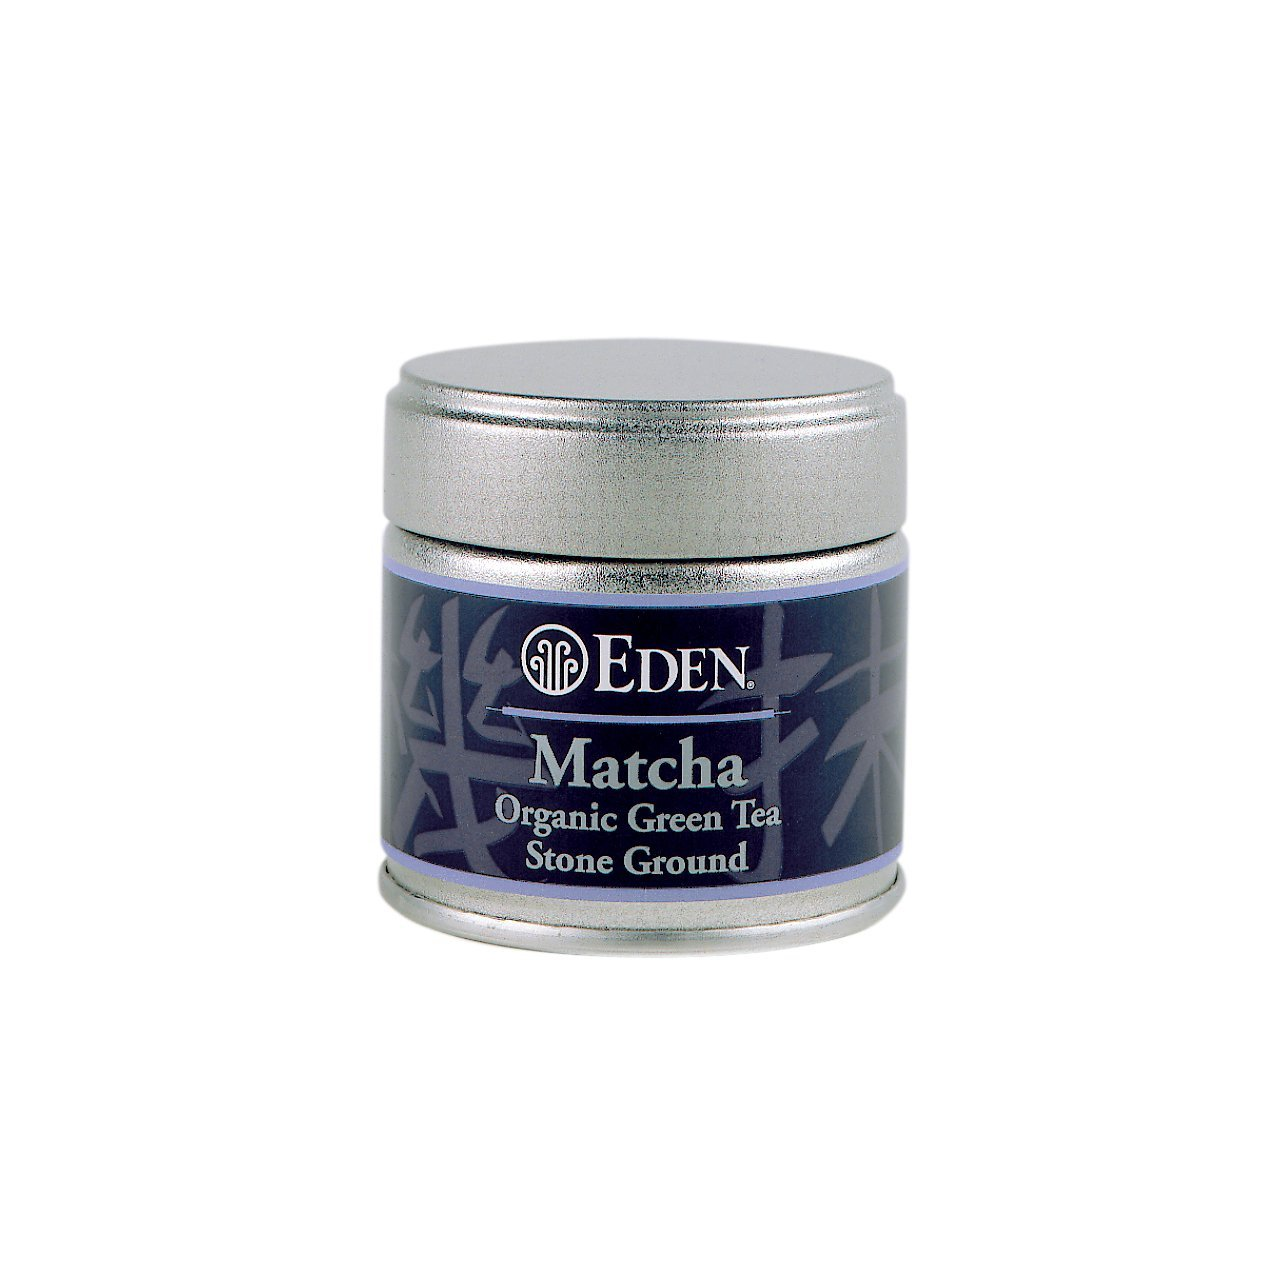 Eden Matcha Tea Review